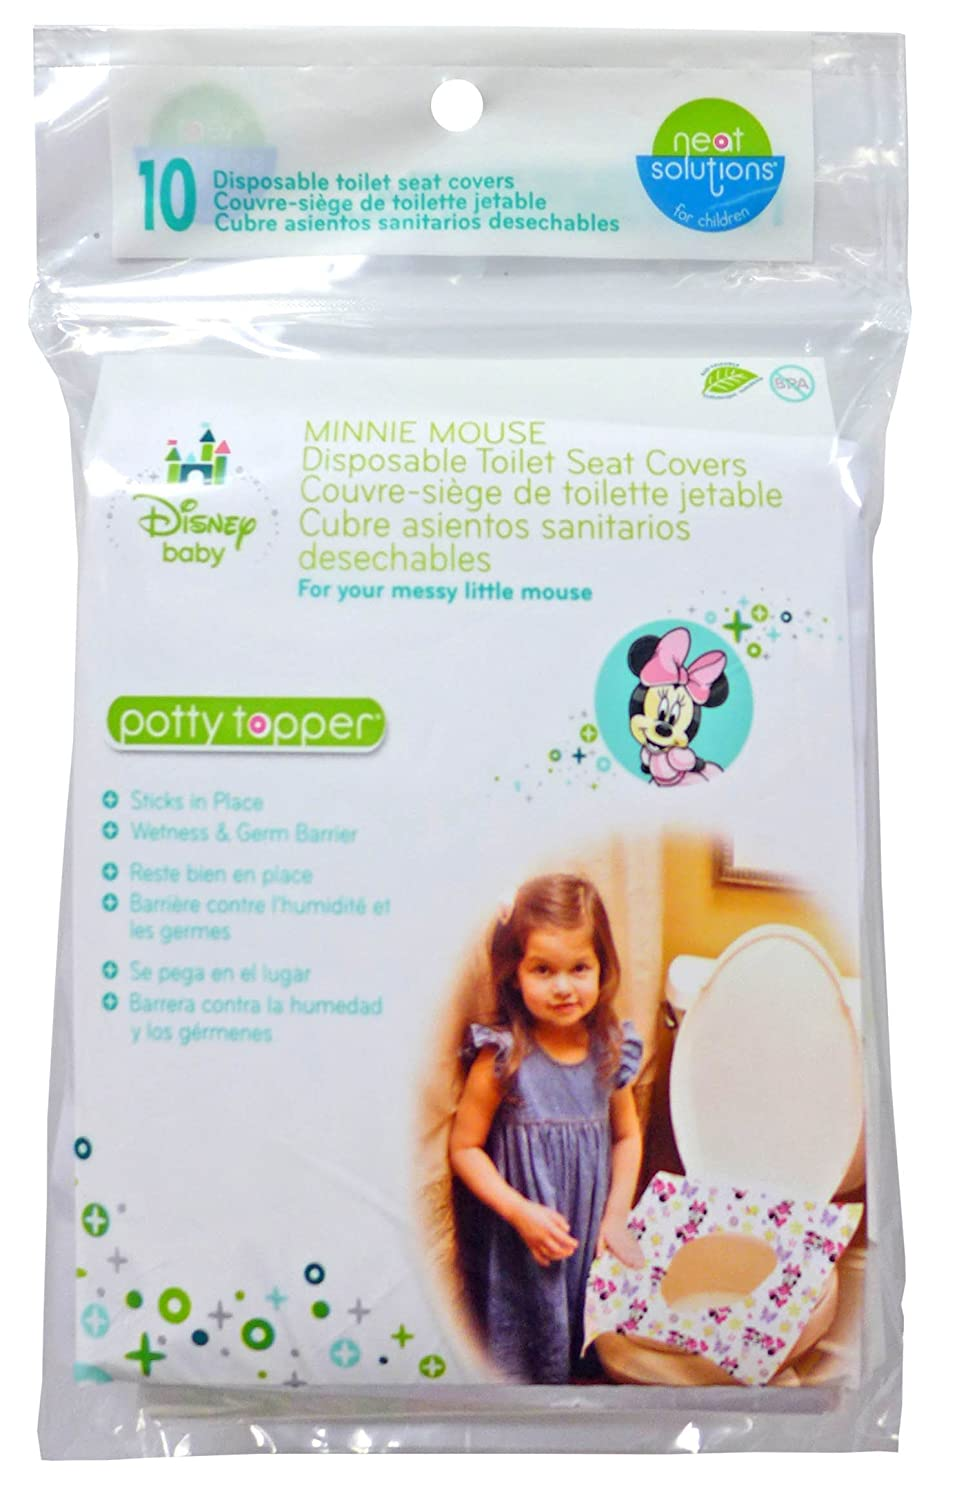 Neat Solutions Disney Minnie Mouse Potty Topper, 10-Count 10318